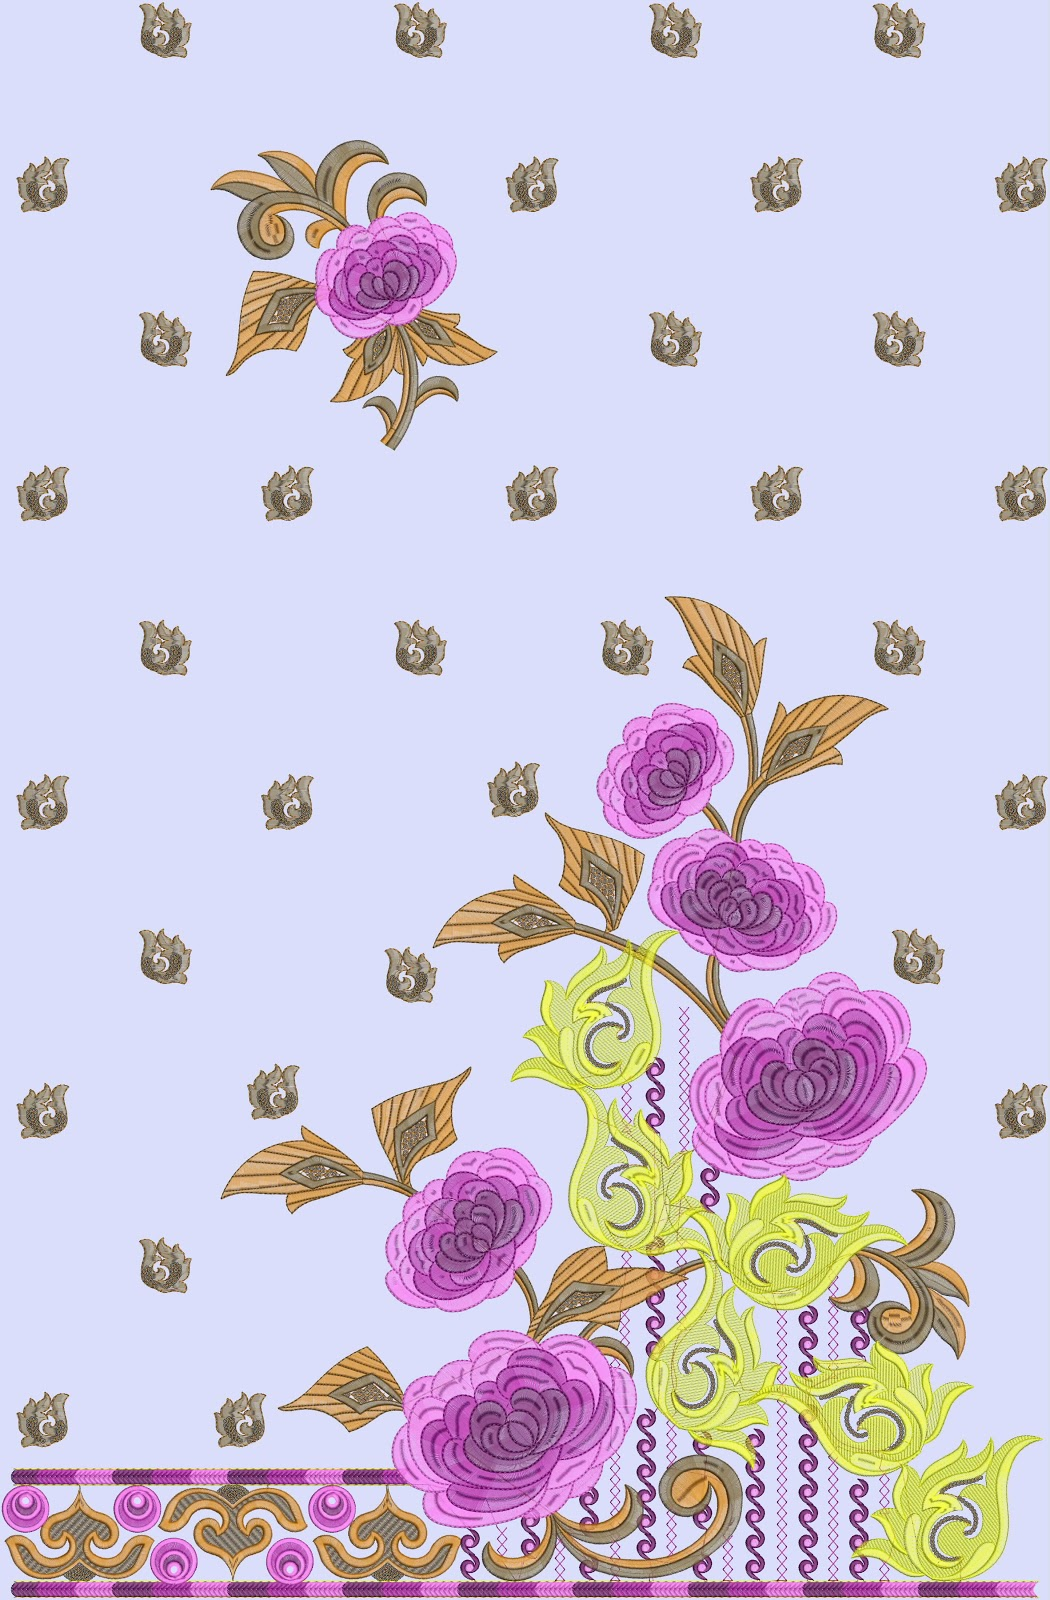 Embdesigntube: Indian Embroidery Designs For Parties